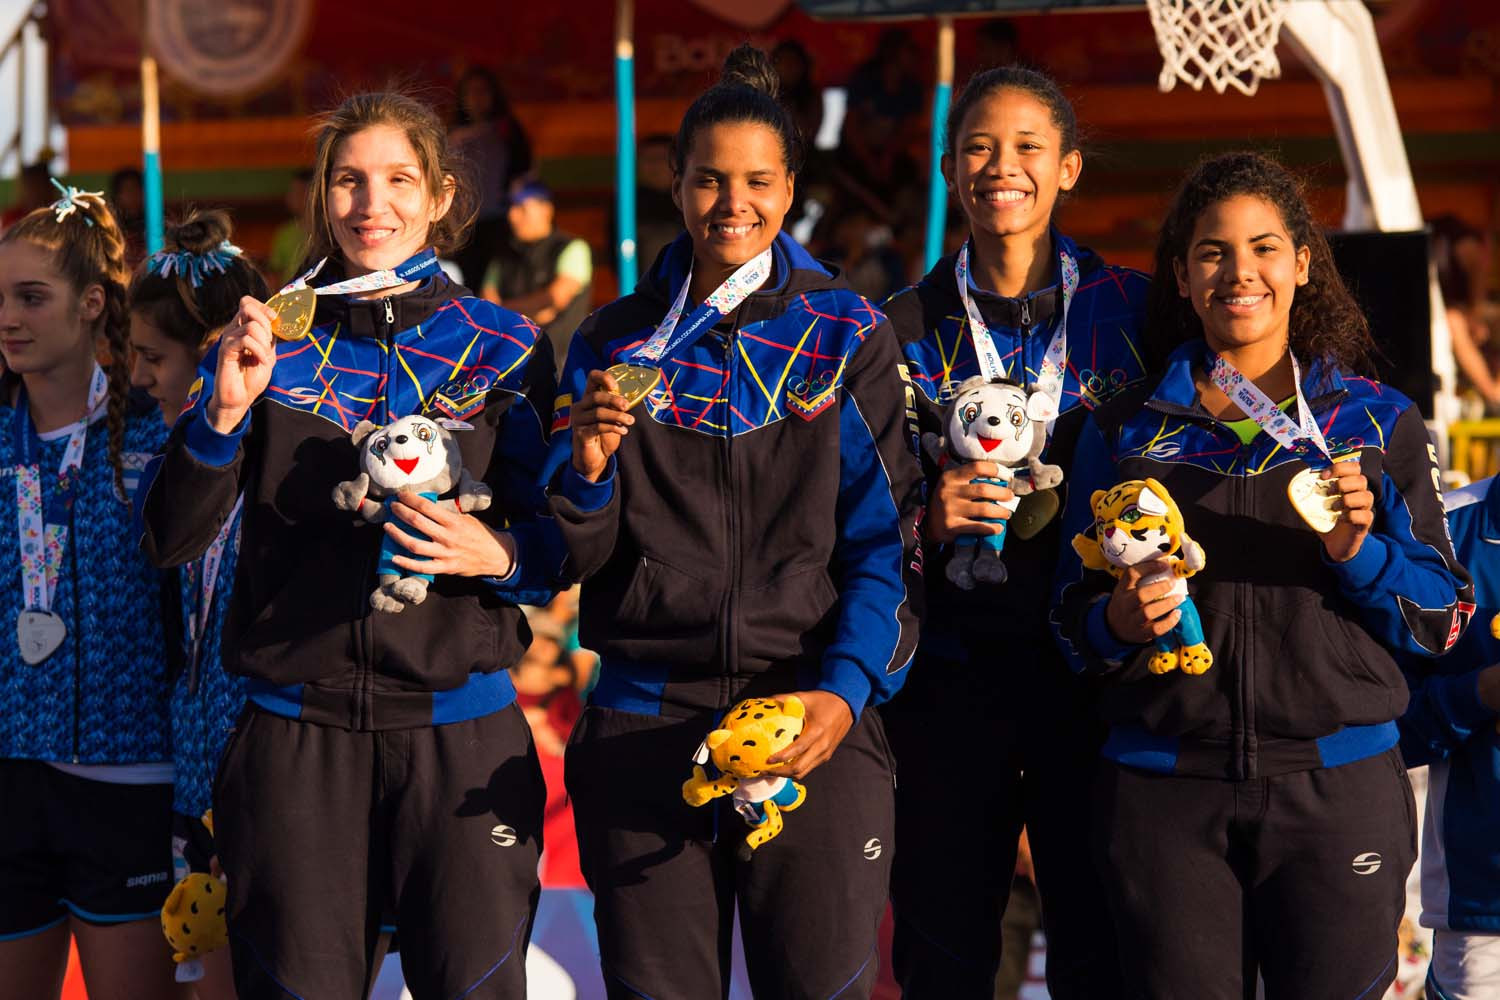 Venezuela beat Argentina to 3x3 basketball gold at South American Games